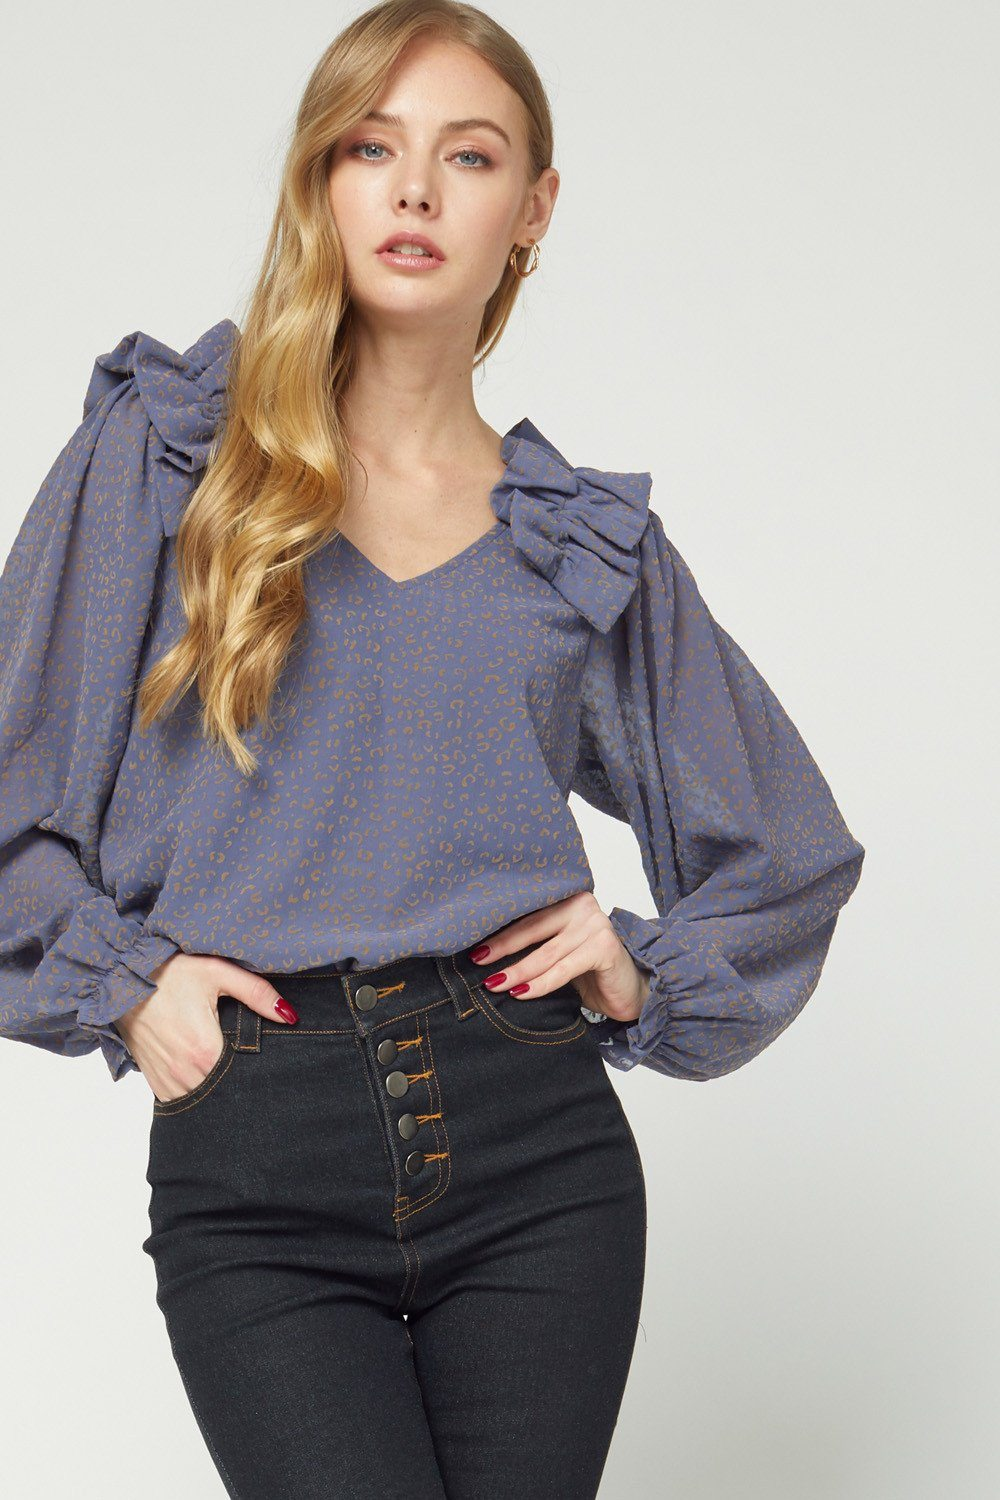 Frill and Leopard Top Slate Gray - Caroline Hill